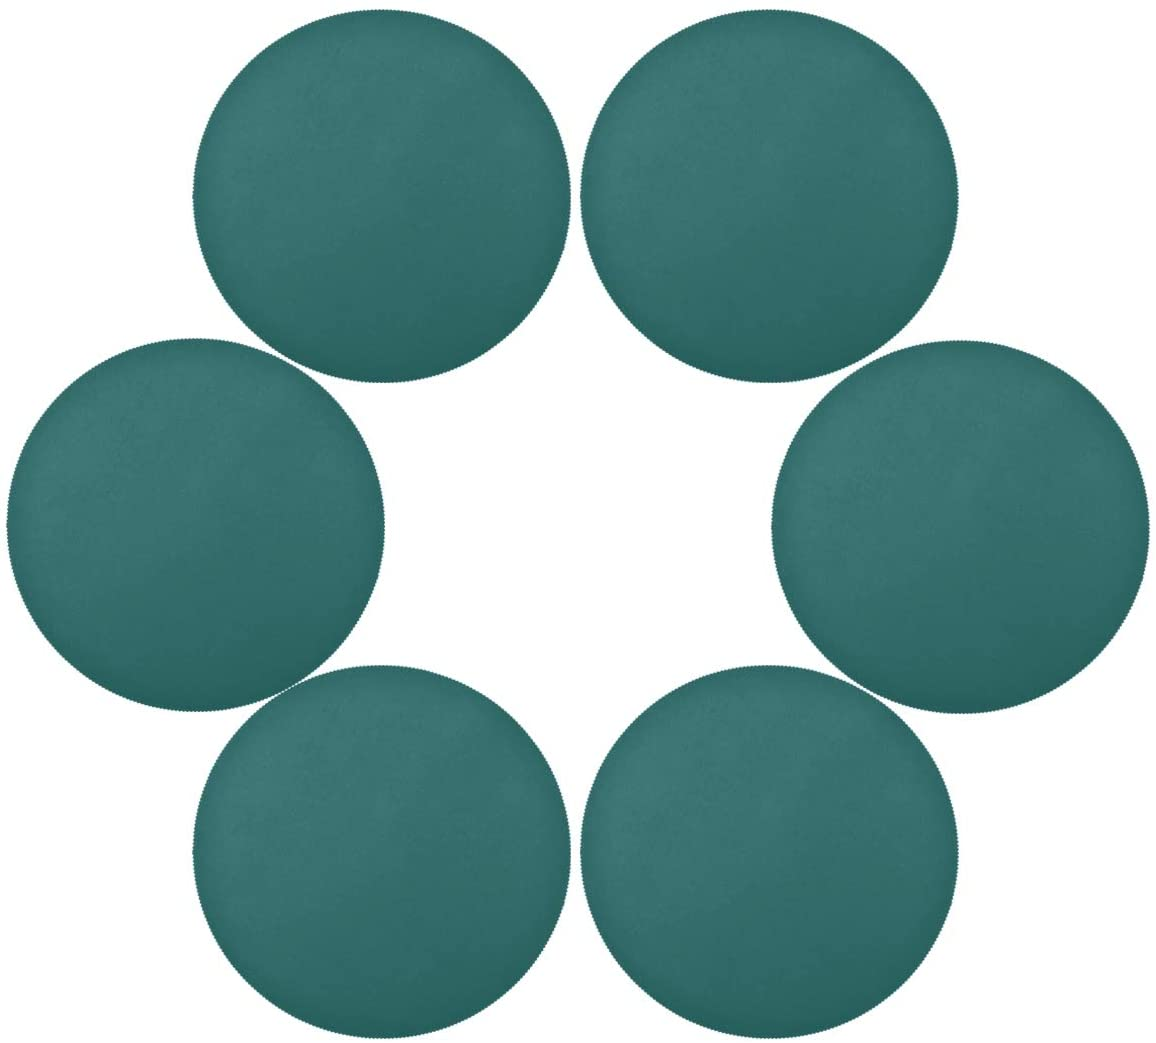 senya Solid Color Round Place mats for Kitchen Dining Table Runner Heat Insulation Non-Slip Washable Fall Placemats Set of 6